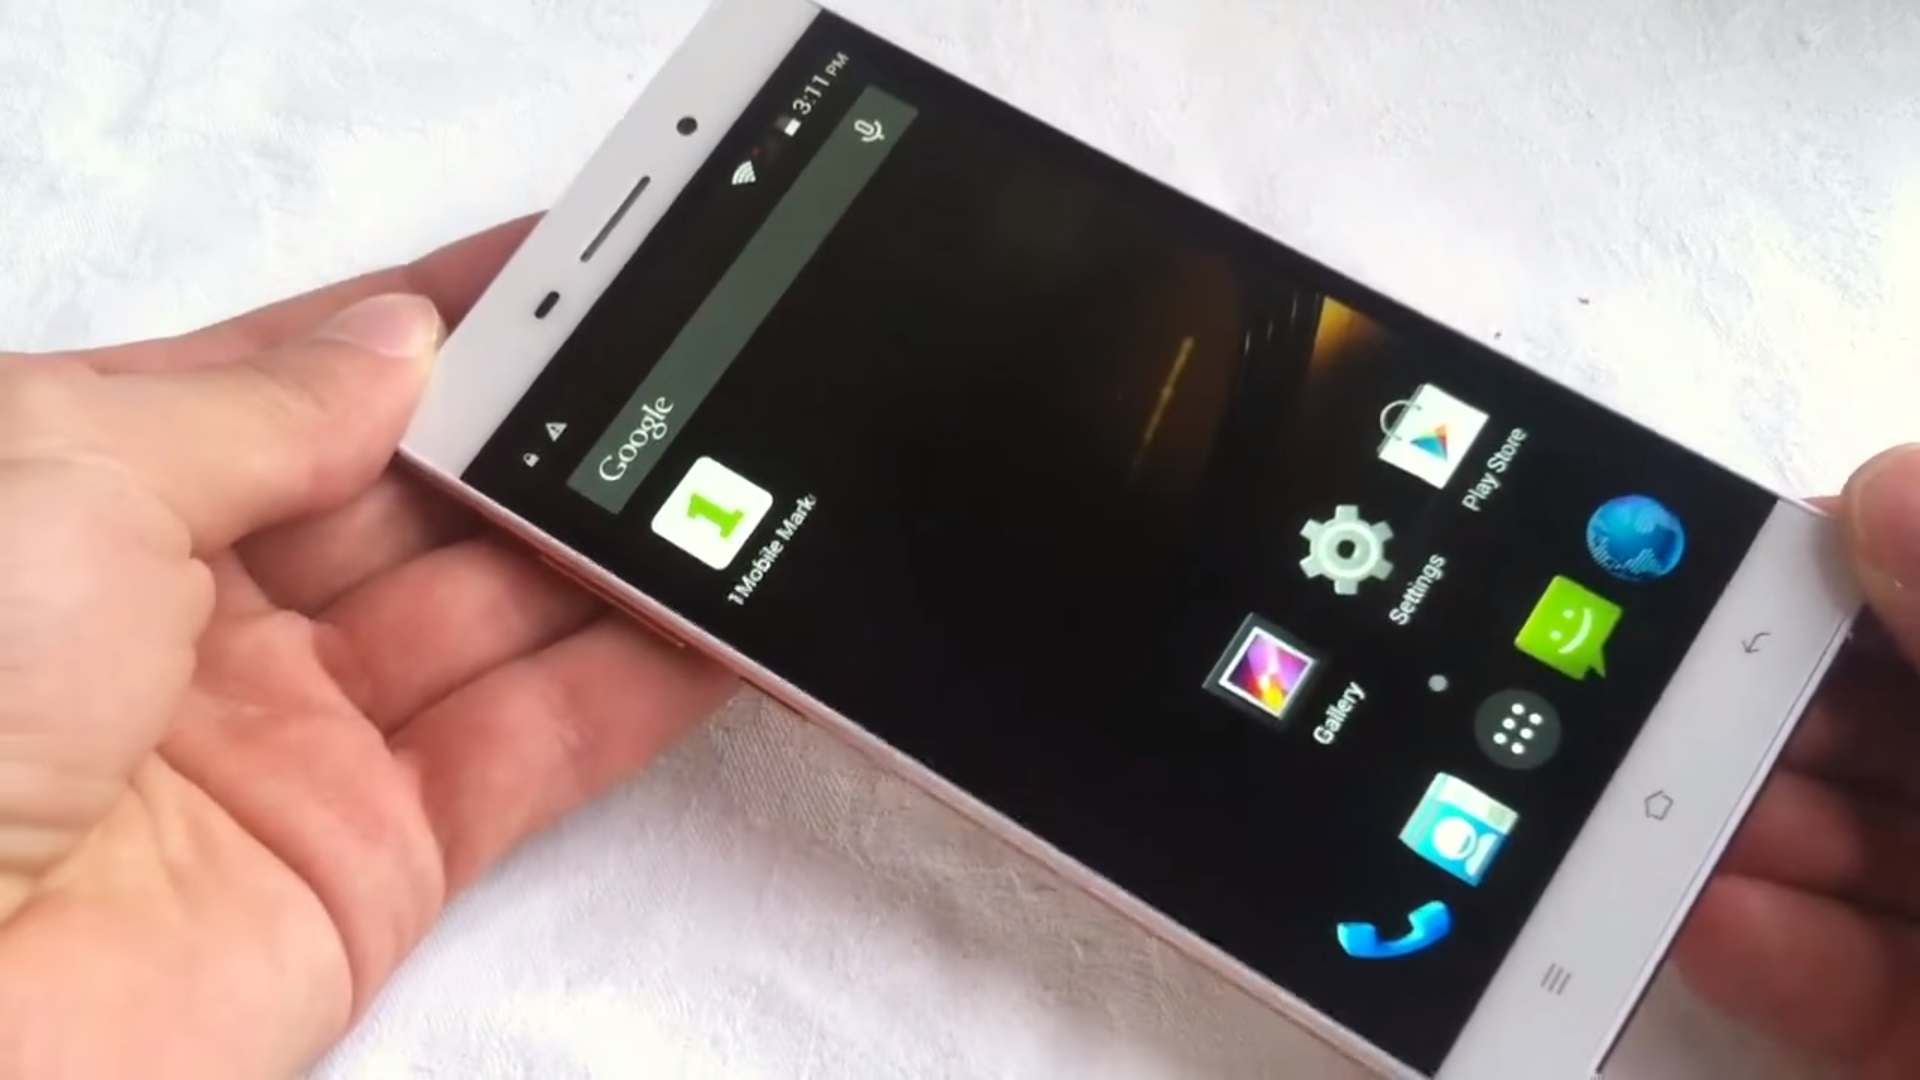 UIMI U5 Hands on, white background, Android home screen.